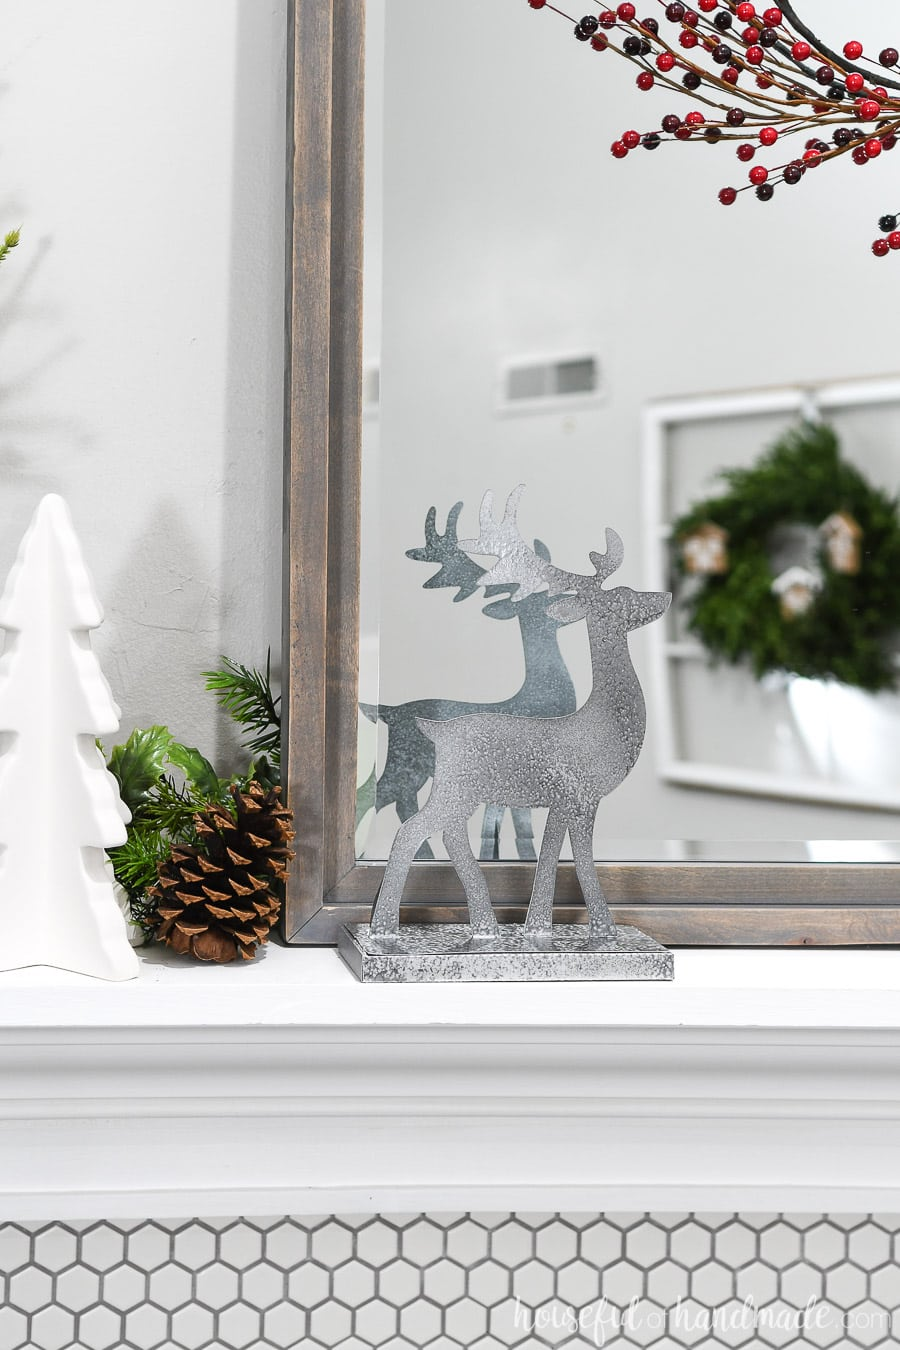 Reindeer figurines on the mantel as part of the classic Christmas decor.